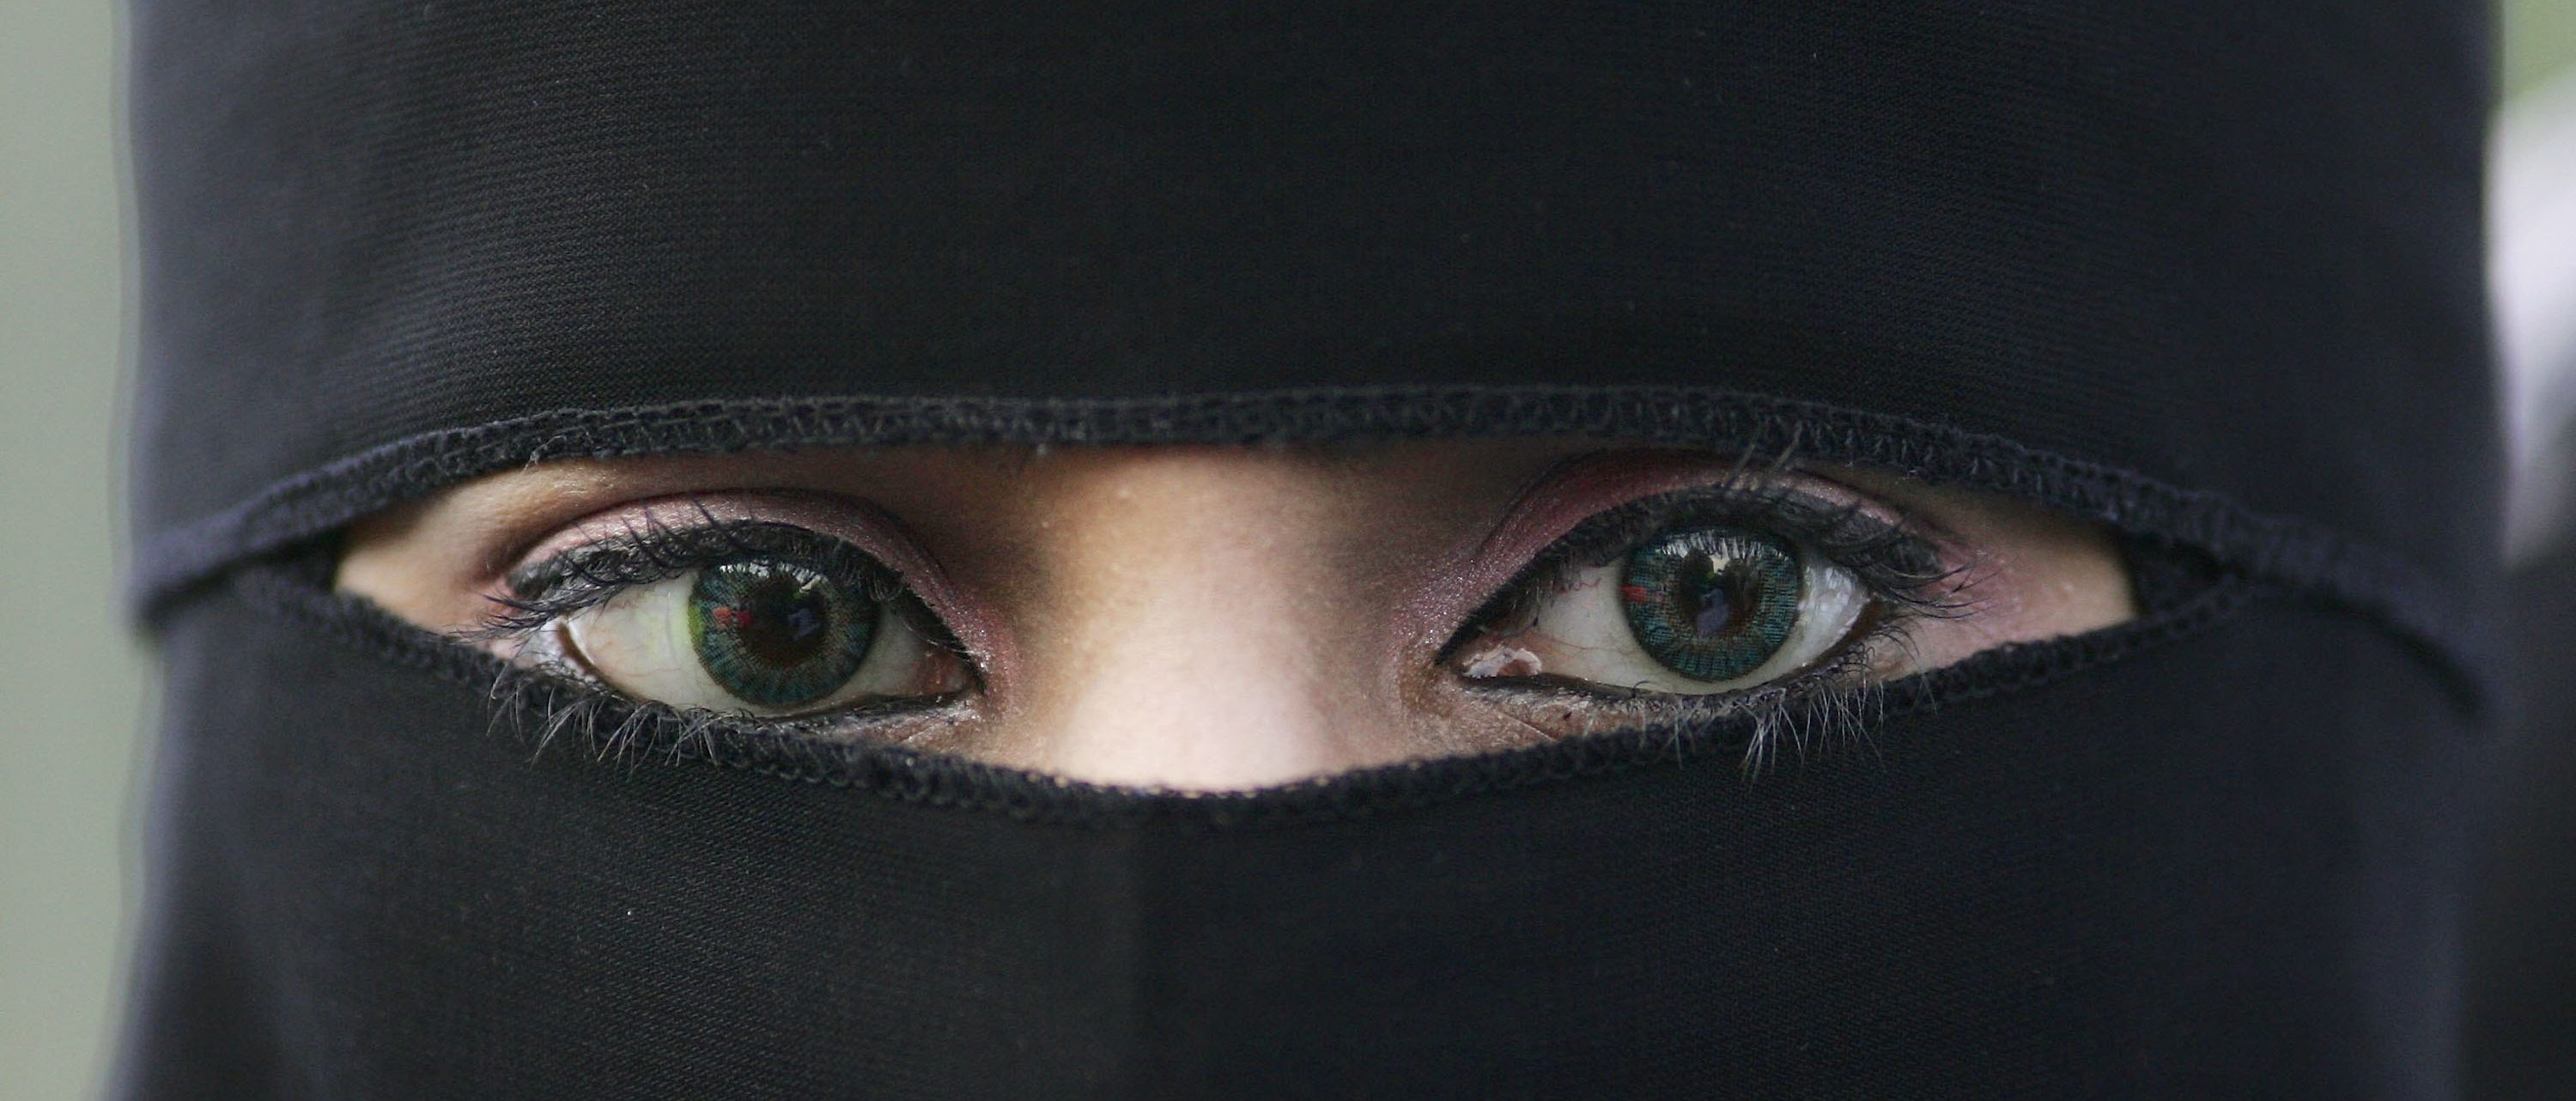 BLACKBURN, UNITED KINGDOM - OCTOBER 14: A Muslim woman wearing a niqab veil protests outside Bangor Street Community centre where Leader of the House of Commons Jack Straw is holding one of his weekend surgery appointments where he faced a protest by around 50 Muslim protesters on October 14, 2006, Blackburn, England. Jack Straw made comments last week regarding his view that veils such as the Burqa and Niqab split communities. (Photo by Christopher Furlong/Getty Images)